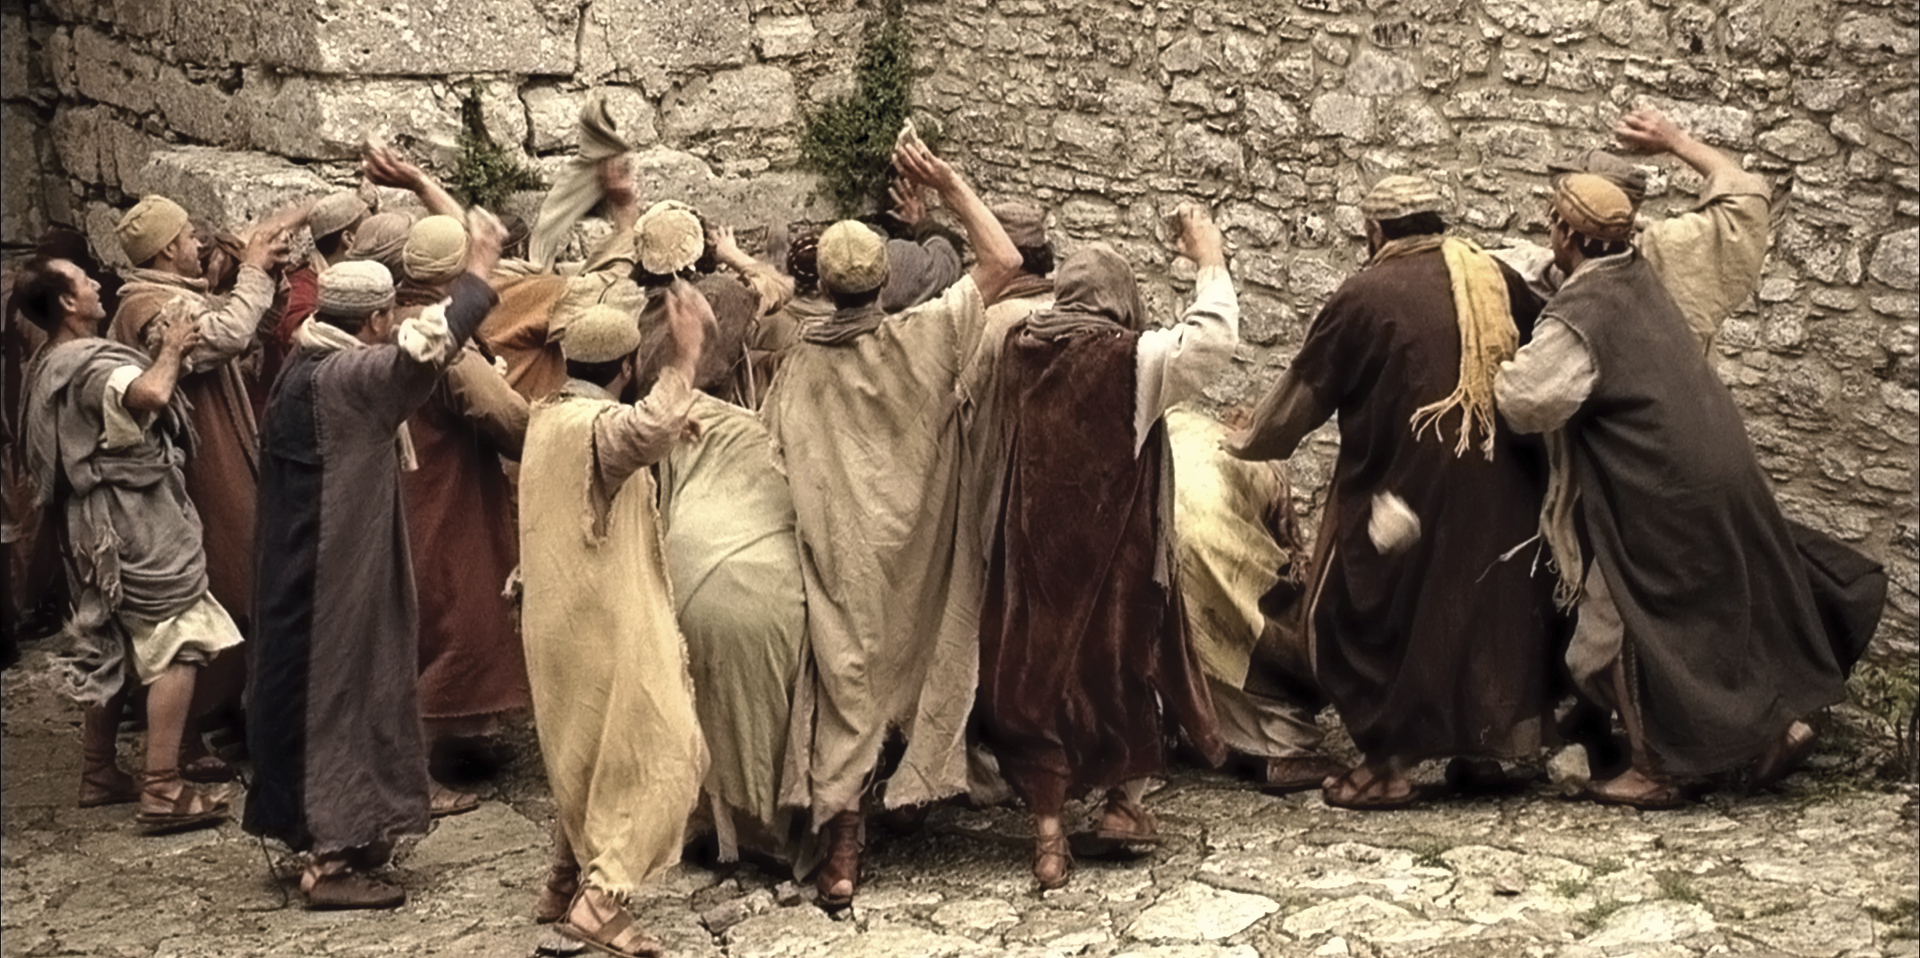 Men upset by Paul's teachings stone him.